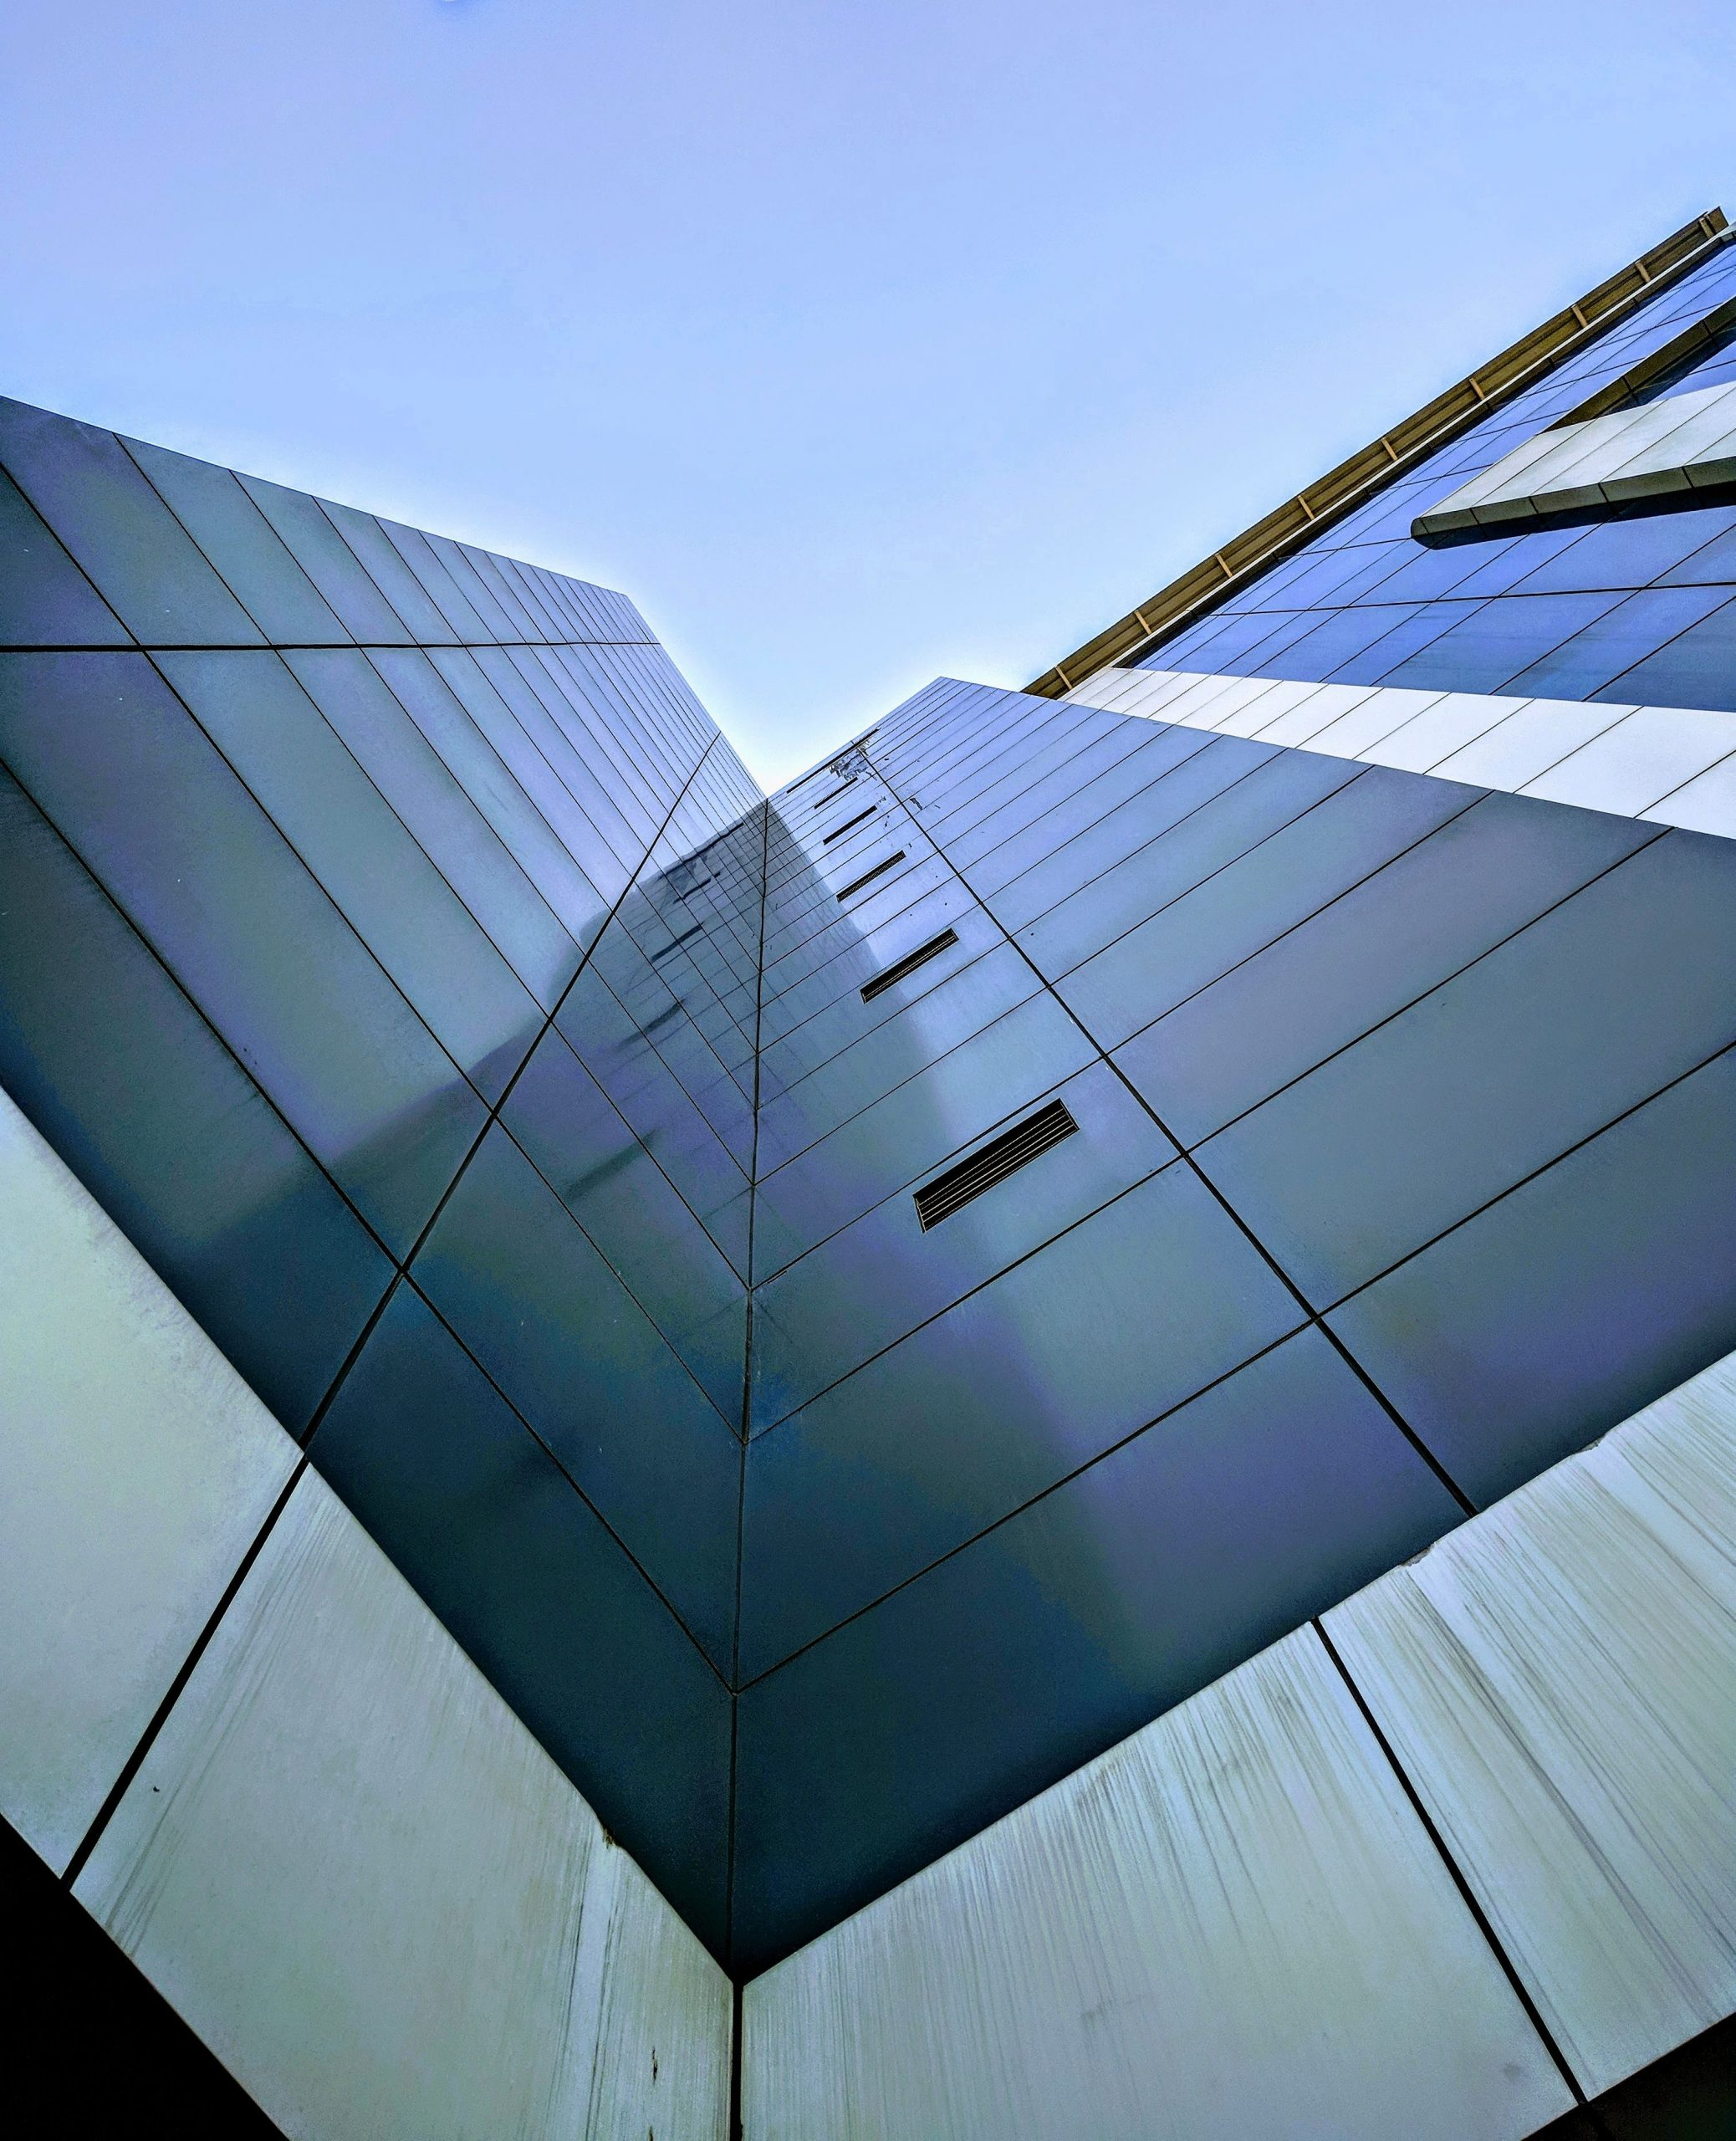 Curtain wall of a building